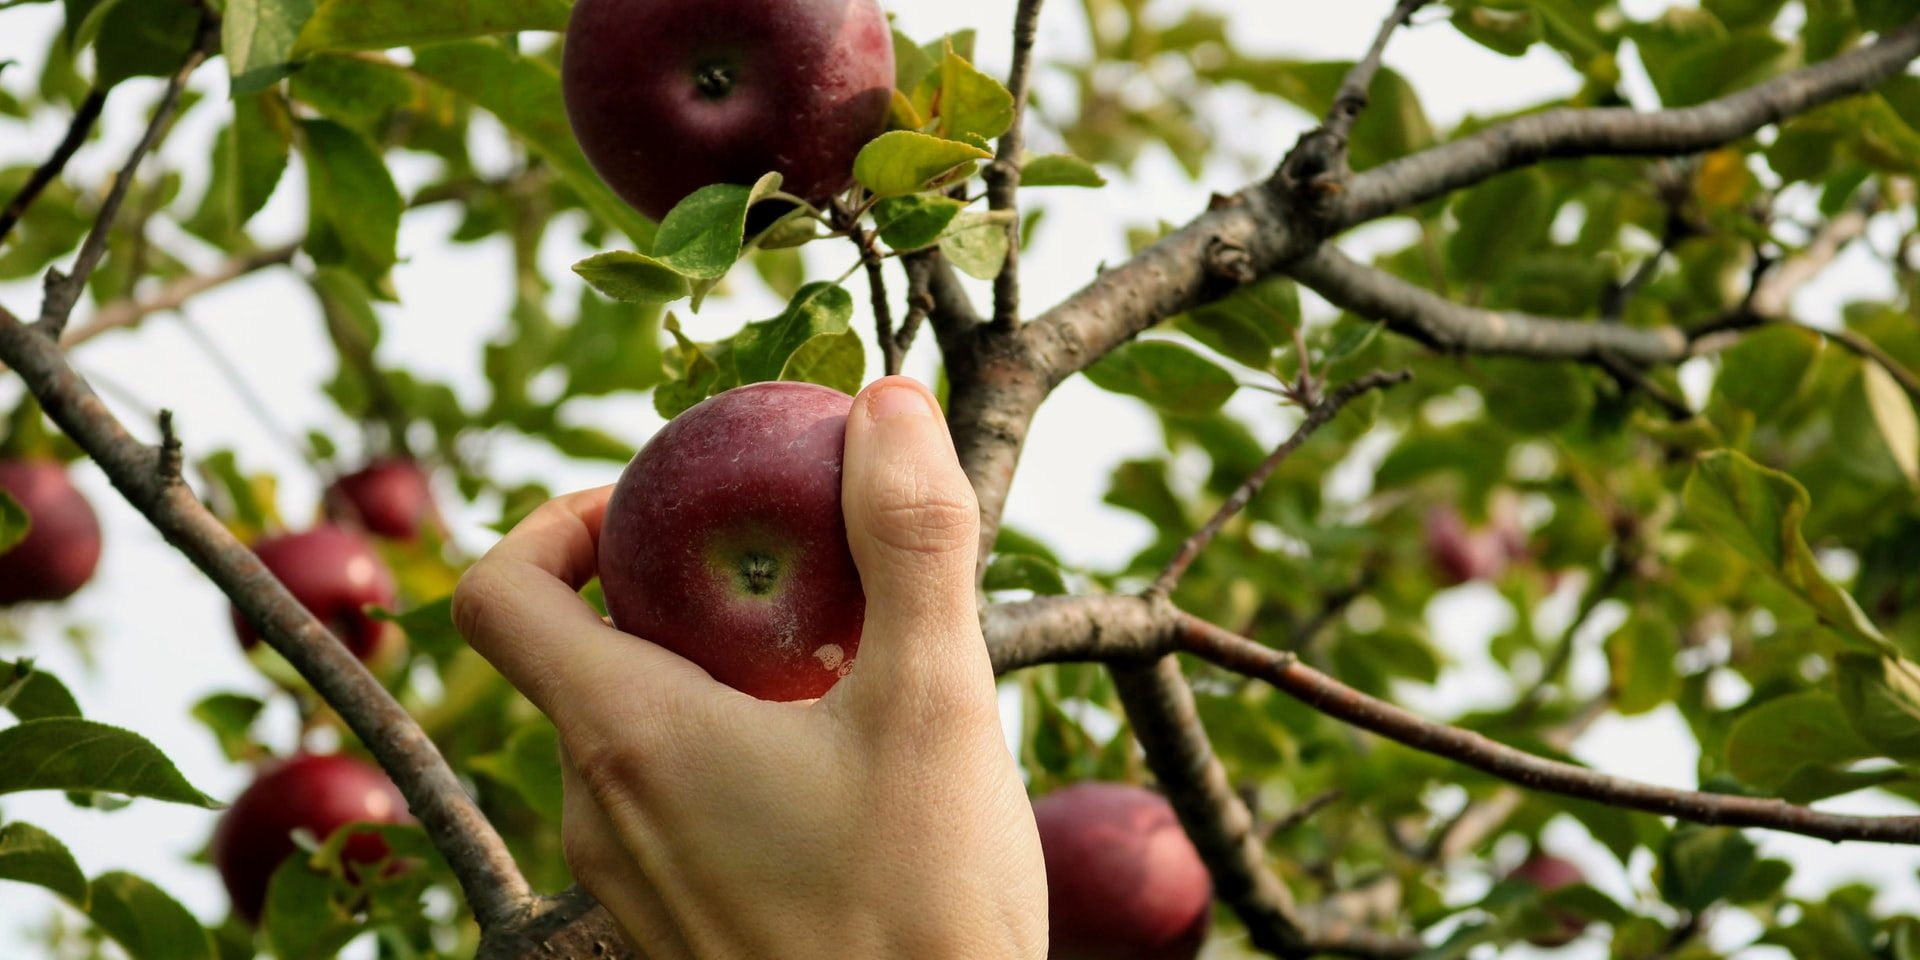 Hand picking fresh apples at an orchard